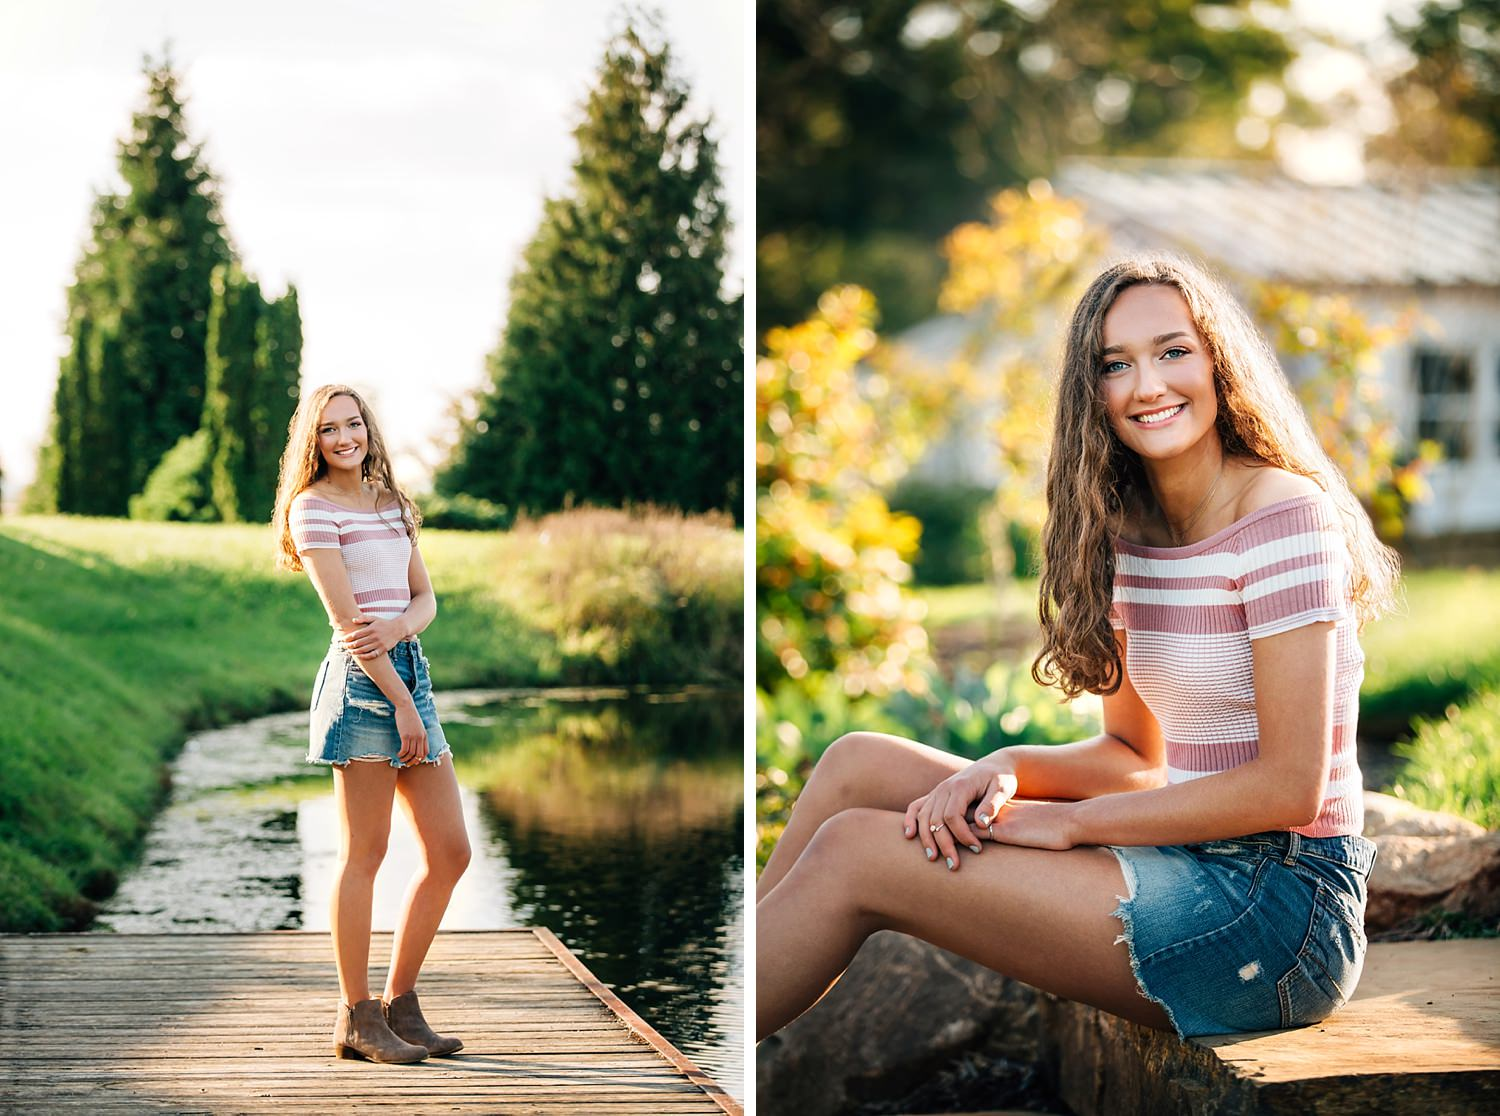 high school senior girl posing for senior portraits at dawes arboretum by sara devere formerly sara long photography